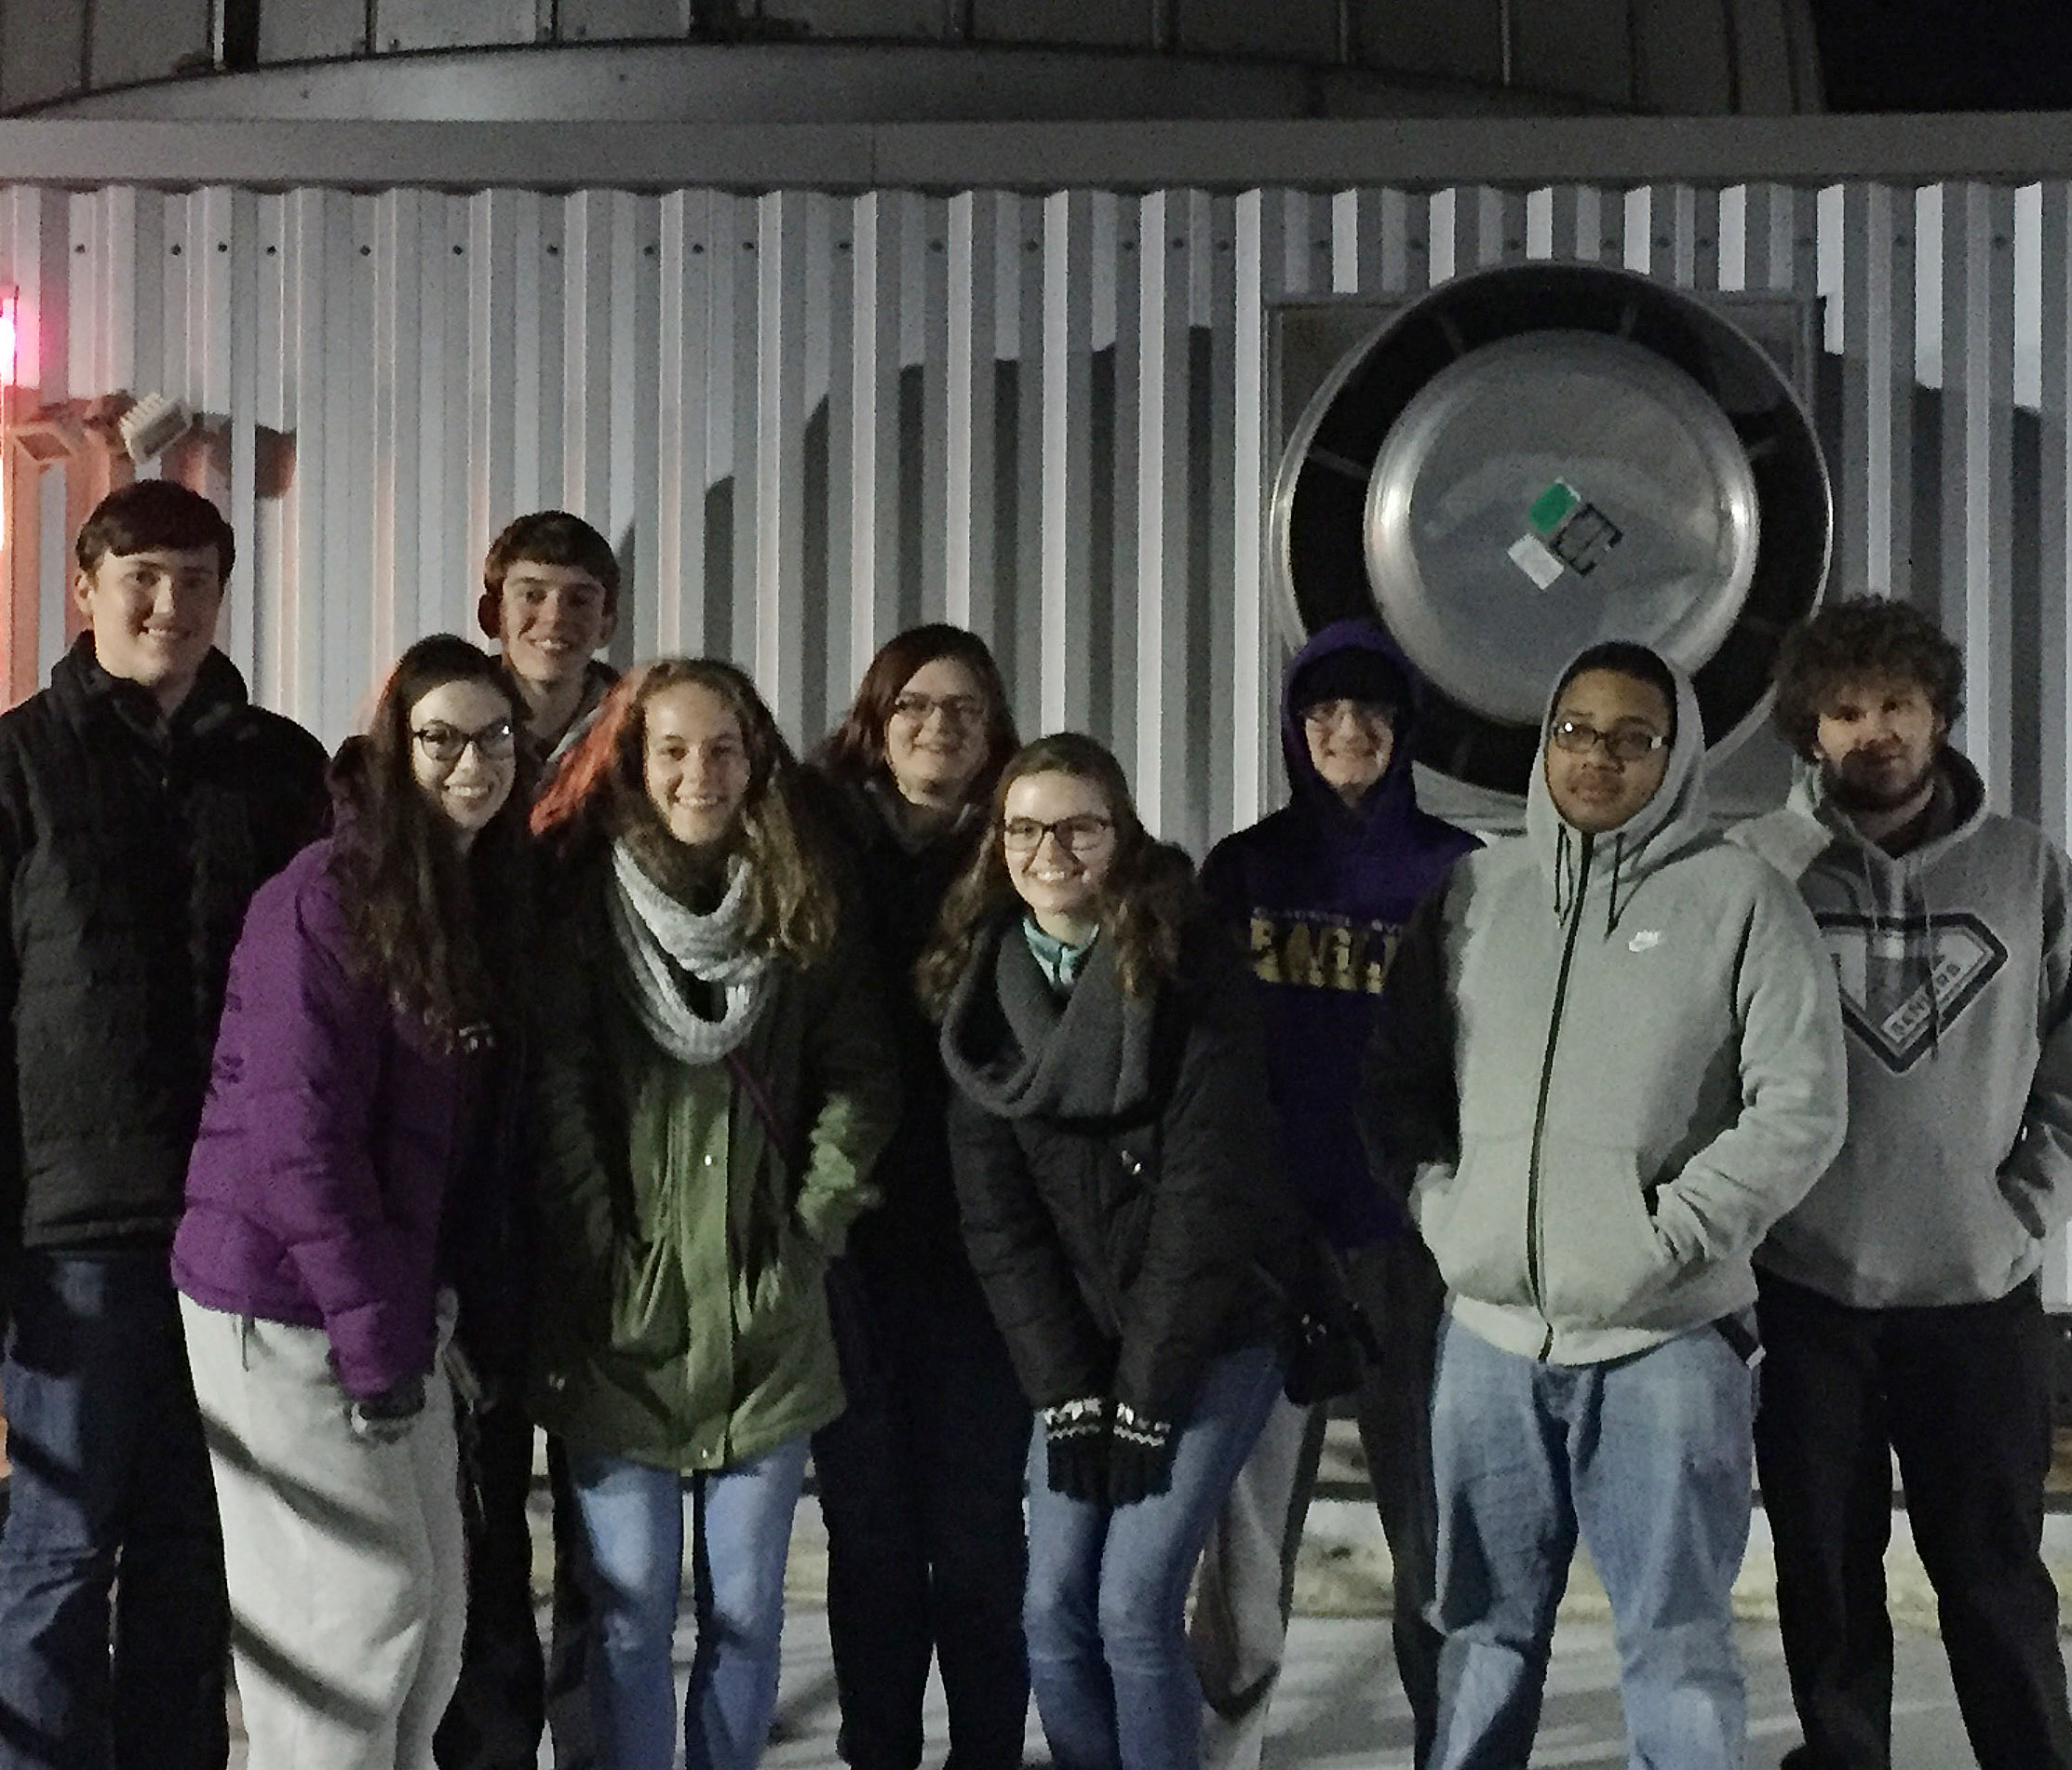 CHS seniors, from left, Zack Settle, Laura Lamb, Murphy Lamb, Caroline McMahan, Vera Brown, Blair Lamb, Ben Rafferty, Ricky Smith-Cecil and Dalton Ballentine take a photo at the MacAdam Student Observatory on the University of Kentucky campus.